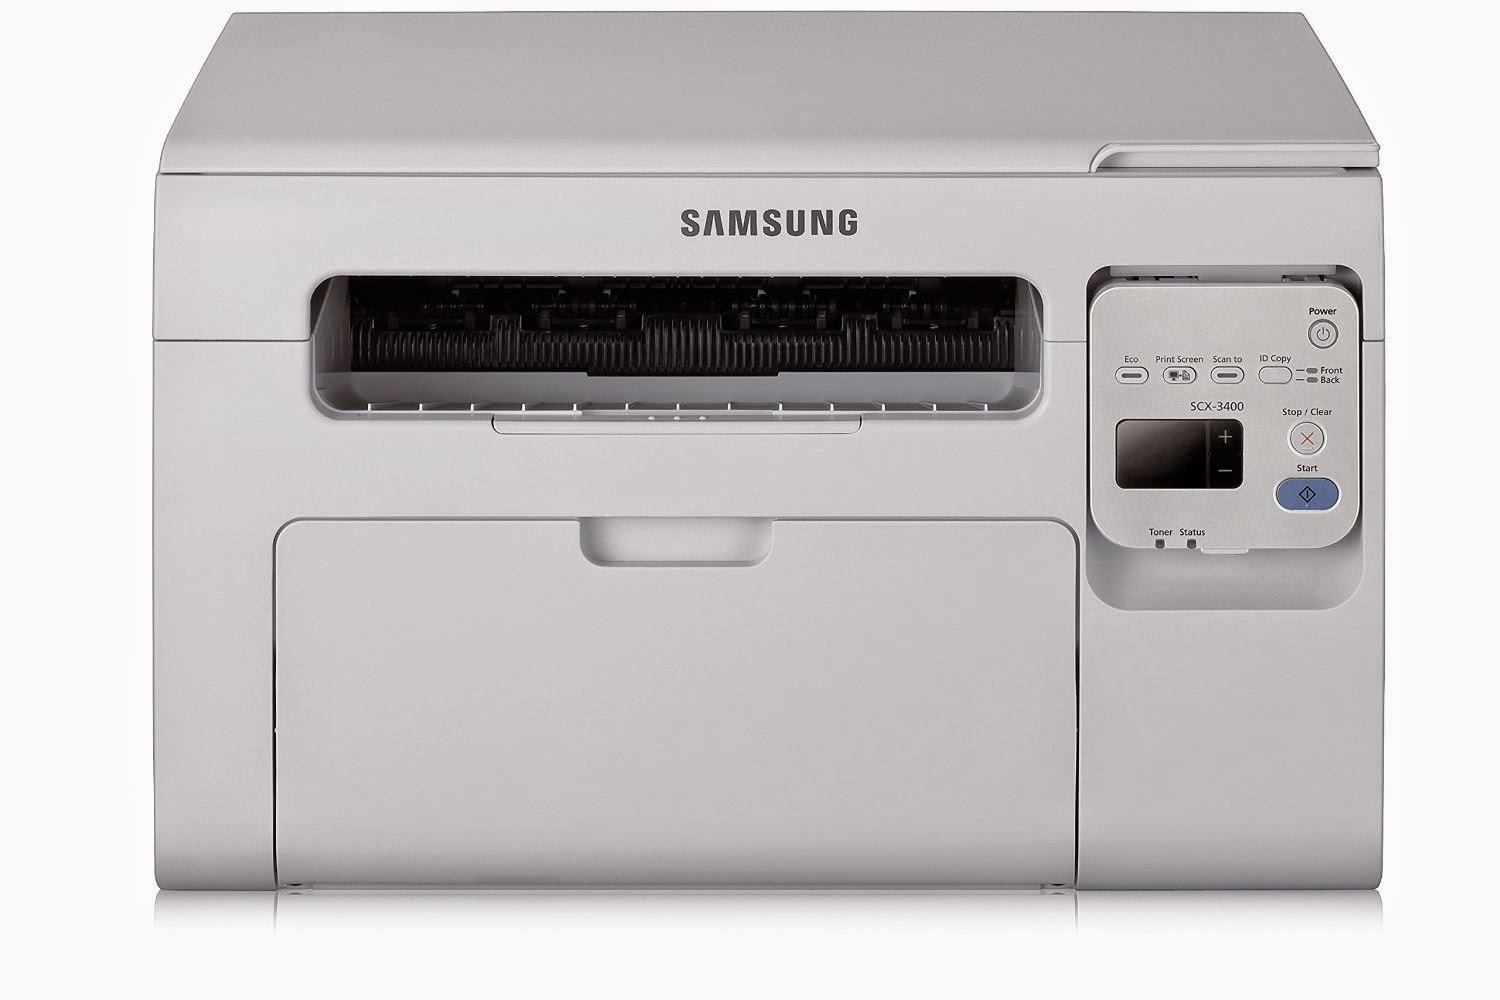 Amazon : Samsung SCX-3401 LaserJet Monochrome Multifunctional Printer worth Rs 12999 for Rs 7699